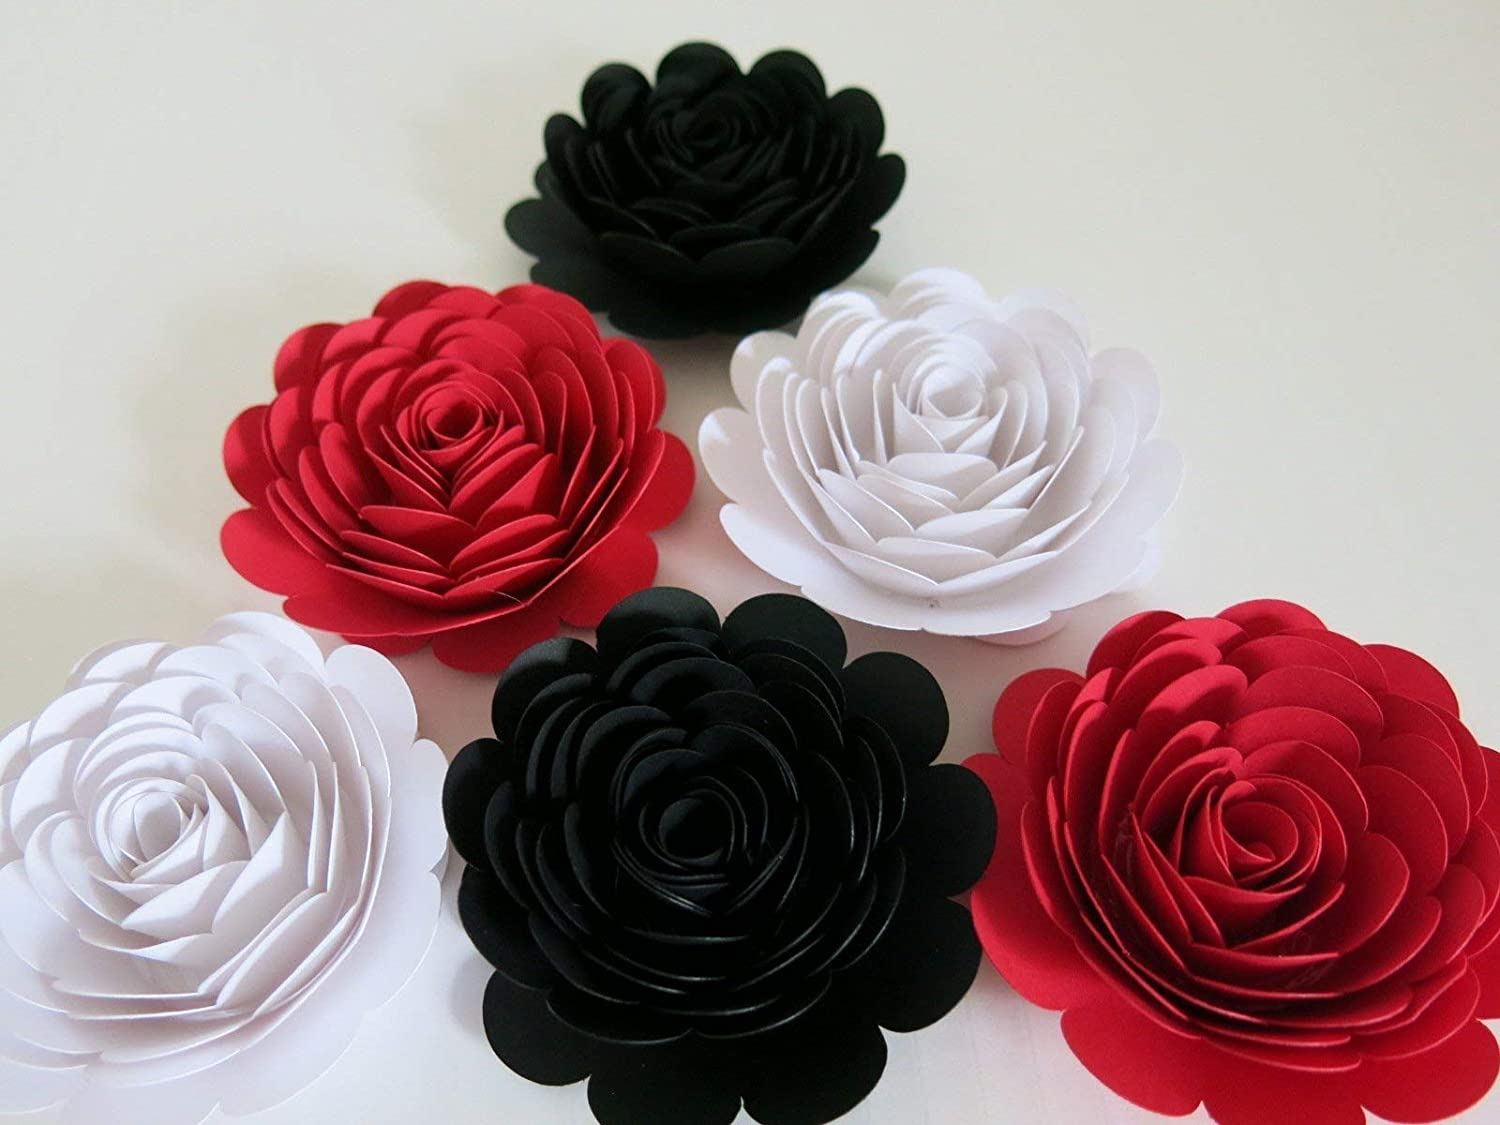 Red Black And White Bridal Shower Decorations  from images-na.ssl-images-amazon.com